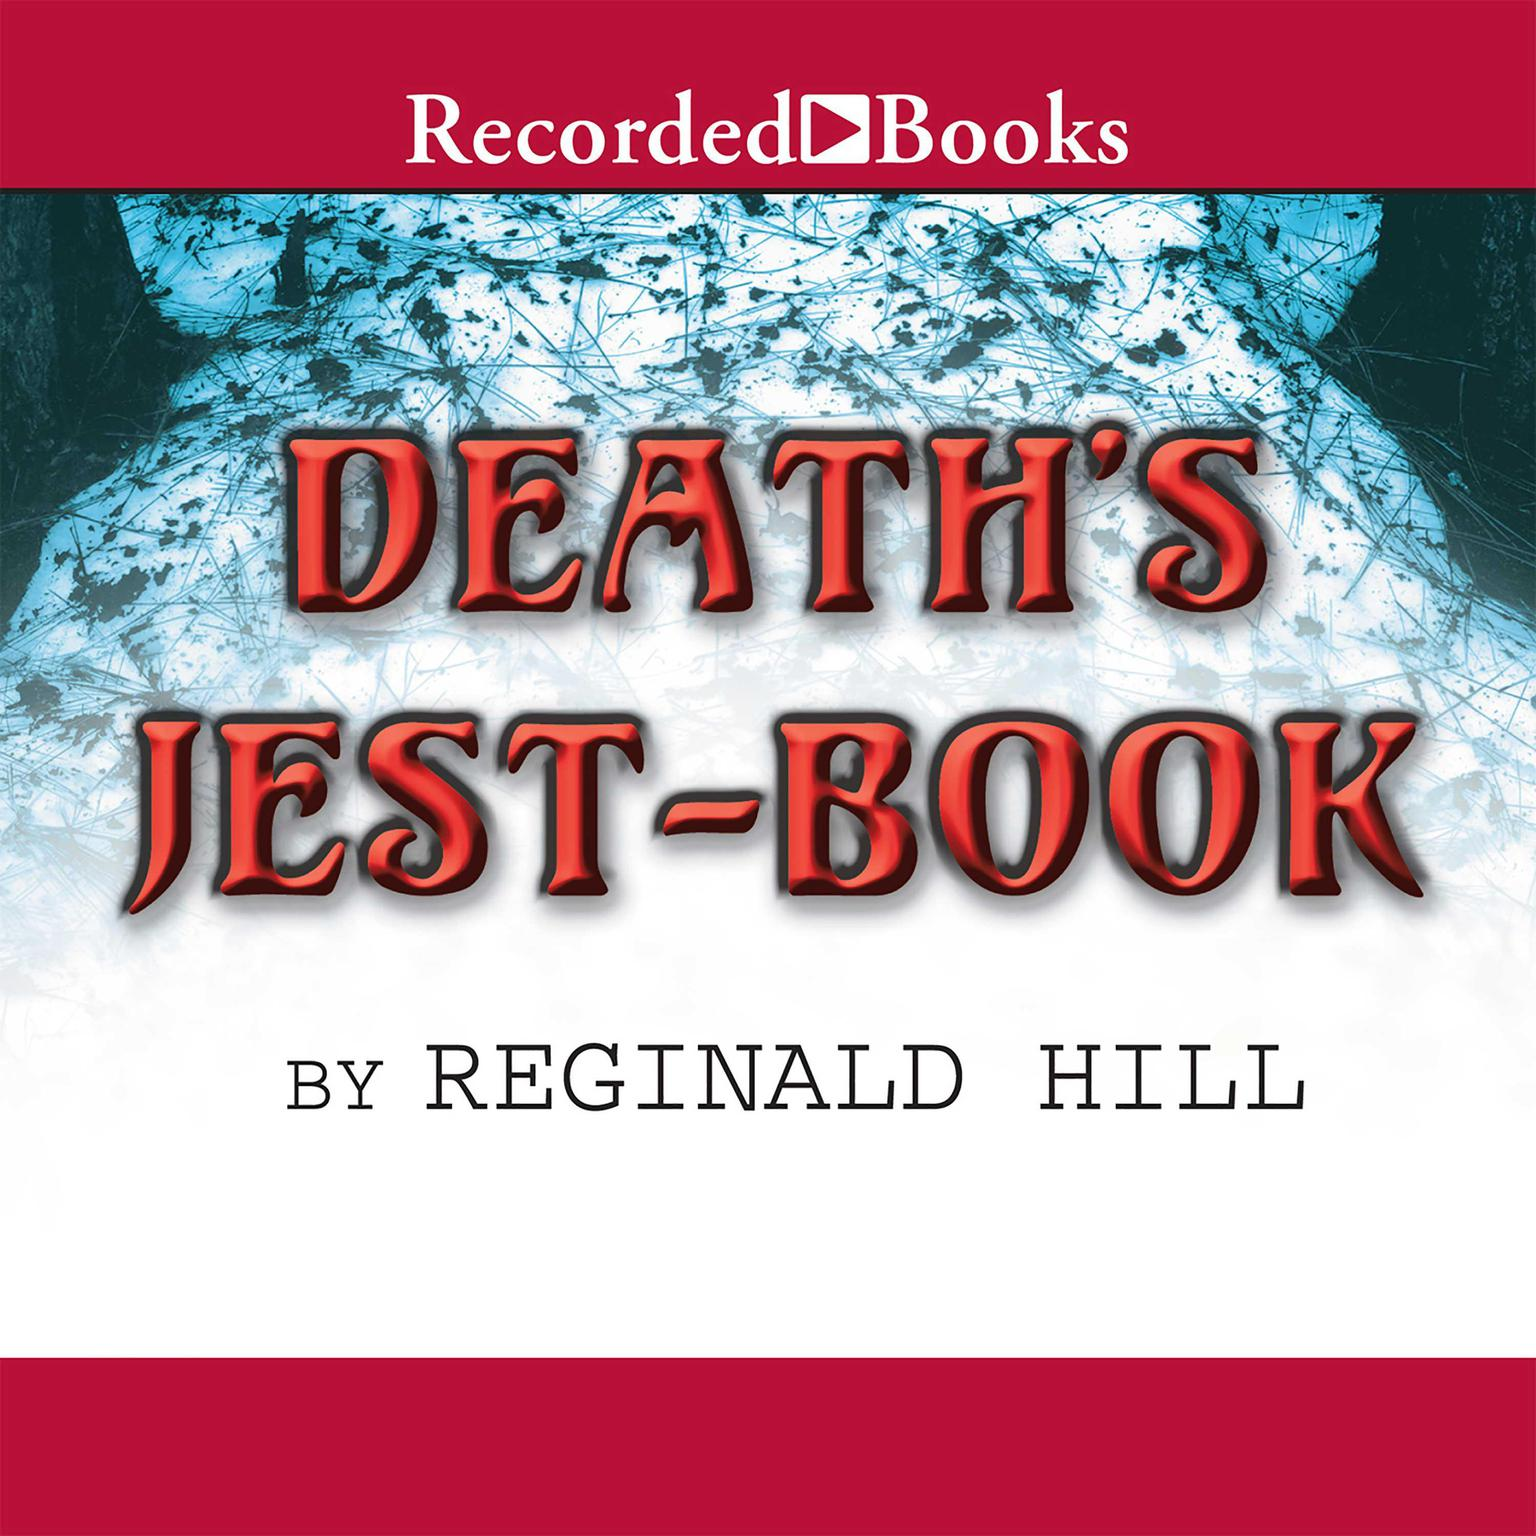 Printable Death's Jest-Book Audiobook Cover Art